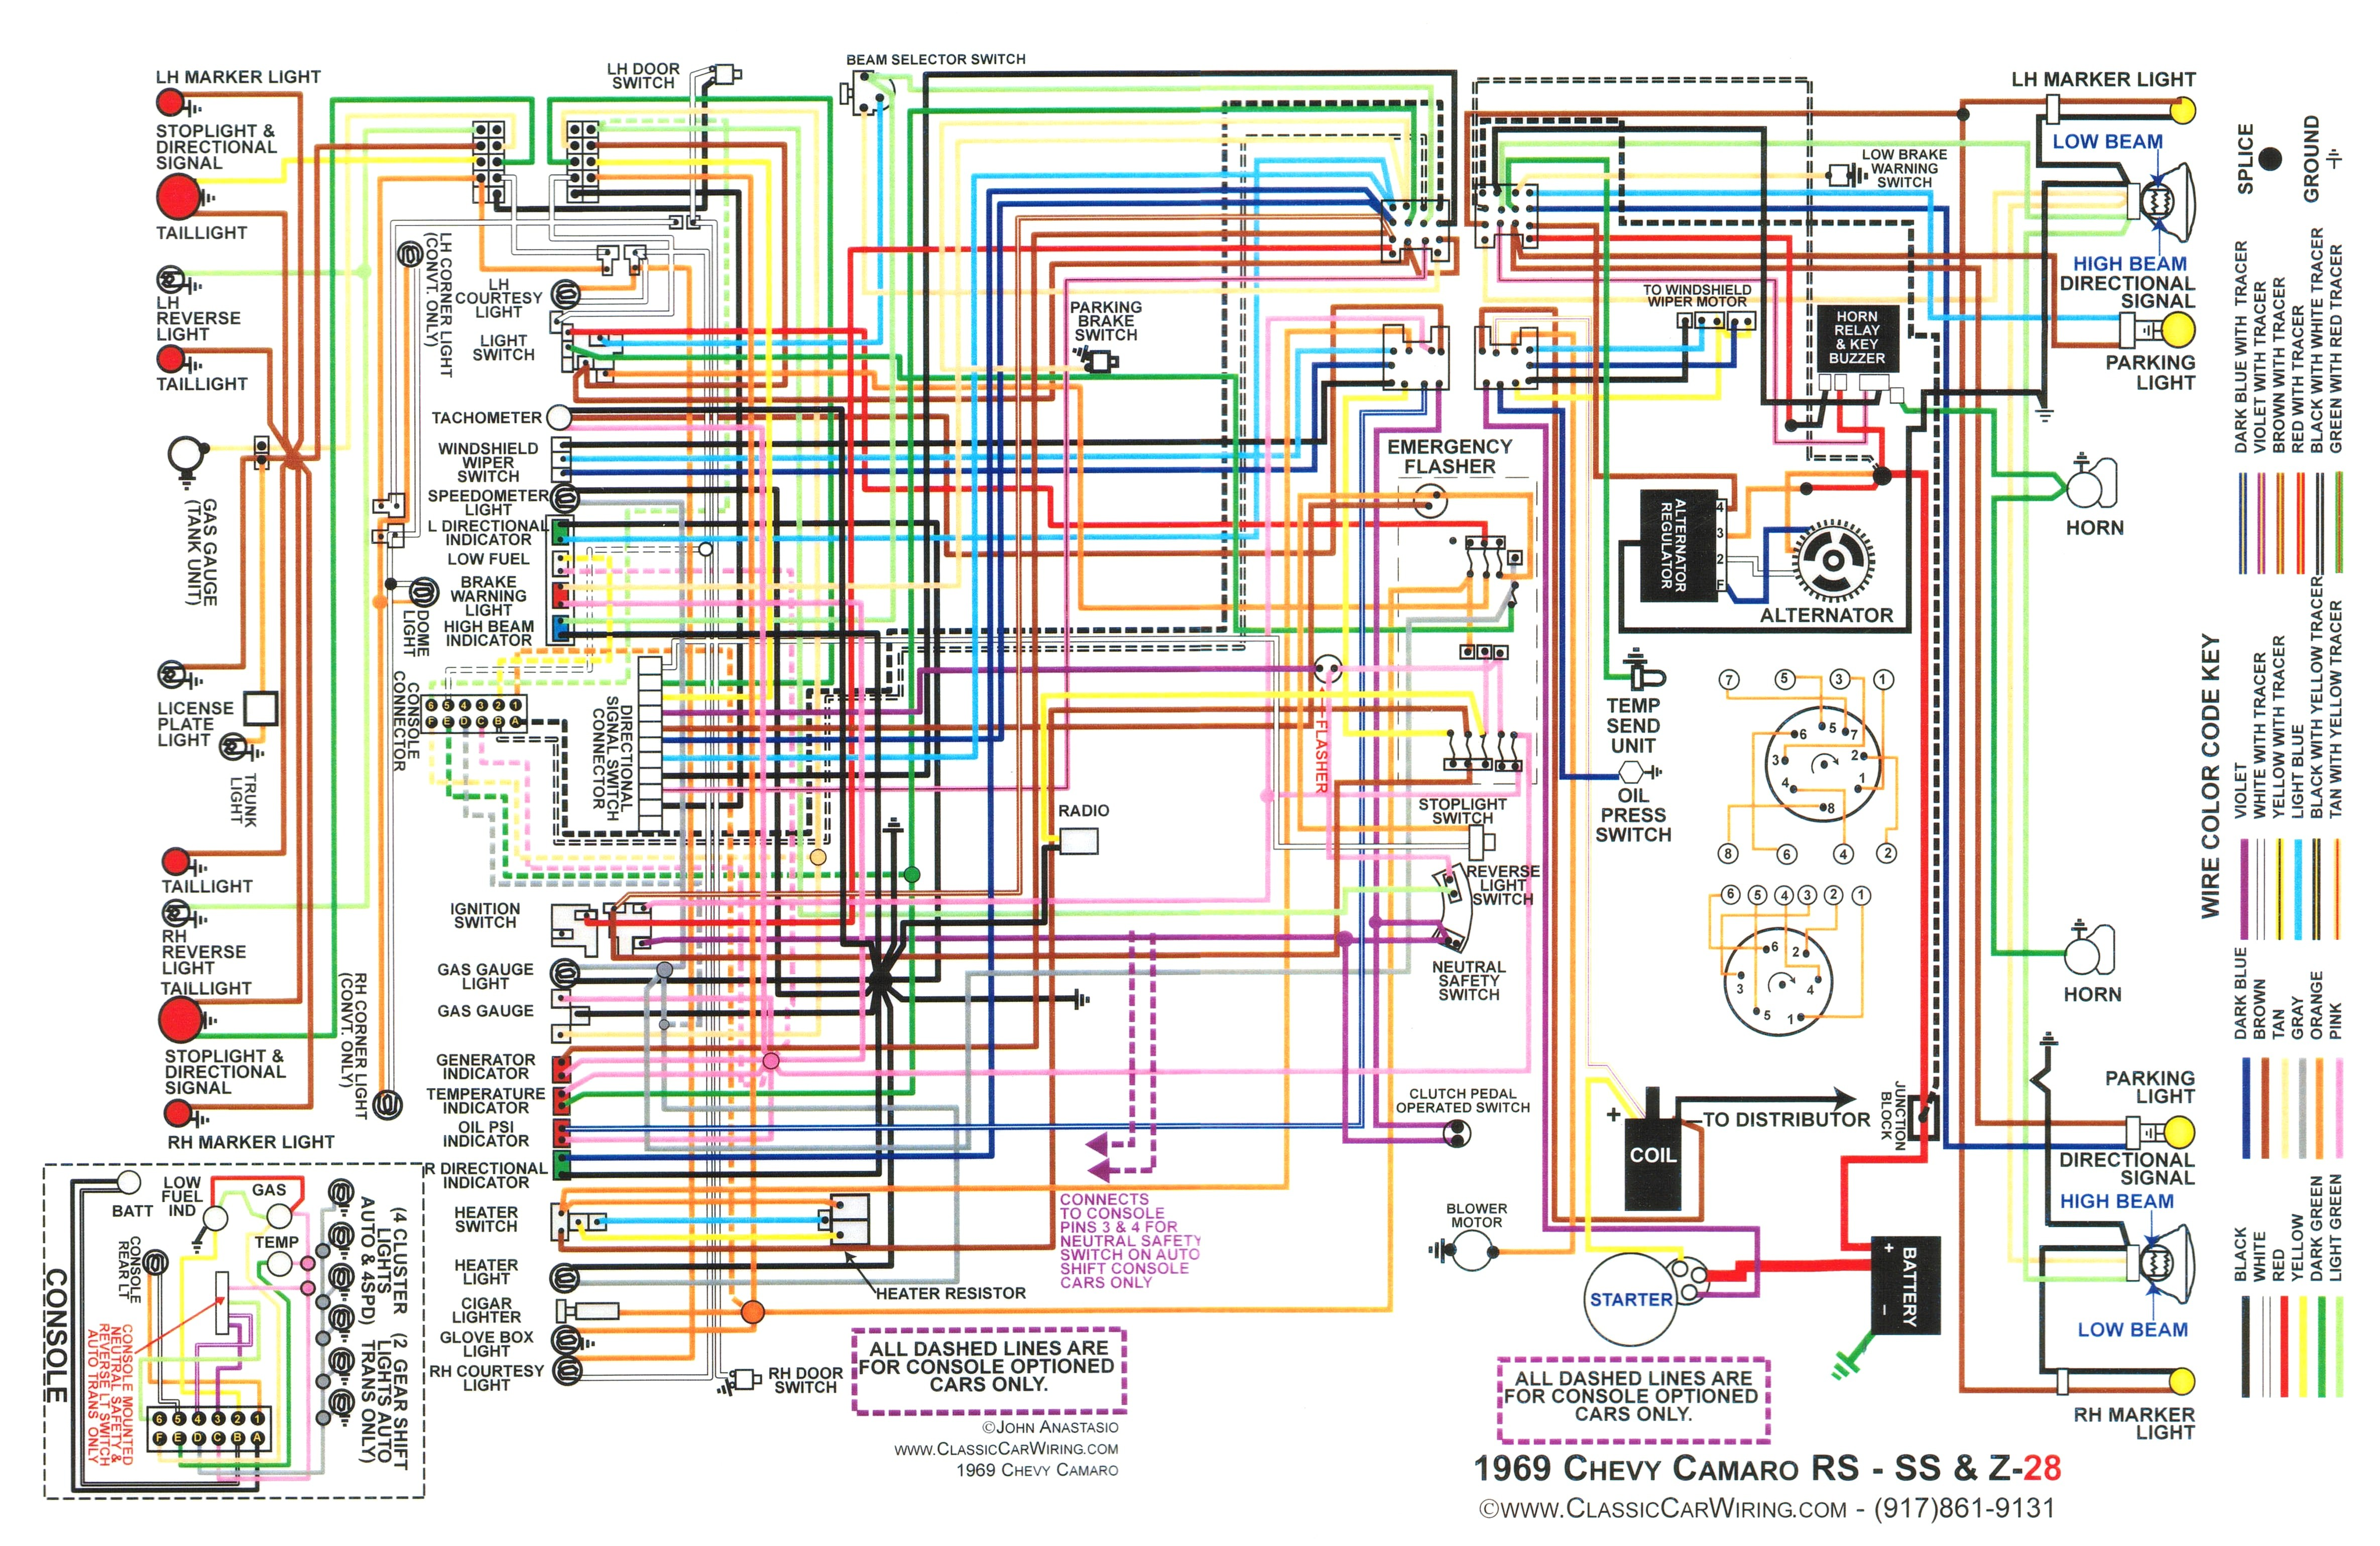 WRG-5771] 1972 Chevelle Wiring Diagram Free on 1972 mustang wiring diagram, 1972 chevelle headlights, chevelle wiper switch diagram, 1972 chevelle specifications, 1972 duster wiring diagram, 1972 chevelle ignition switch, 1972 blazer wiring diagram, 1972 scout ii wiring diagram, 1972 chevelle starter, 1972 chevelle rear suspension, 1972 chevelle lights, 70 chevelle vacuum diagram, 1972 chevelle air cleaner, 1972 nova wiring diagram, 1972 corvette wiring diagram, chevelle ac diagram, 72 chevelle starter wire diagram, 1972 chevelle exhaust, 1967 chevelle horn diagram, 1972 ranchero wiring diagram,